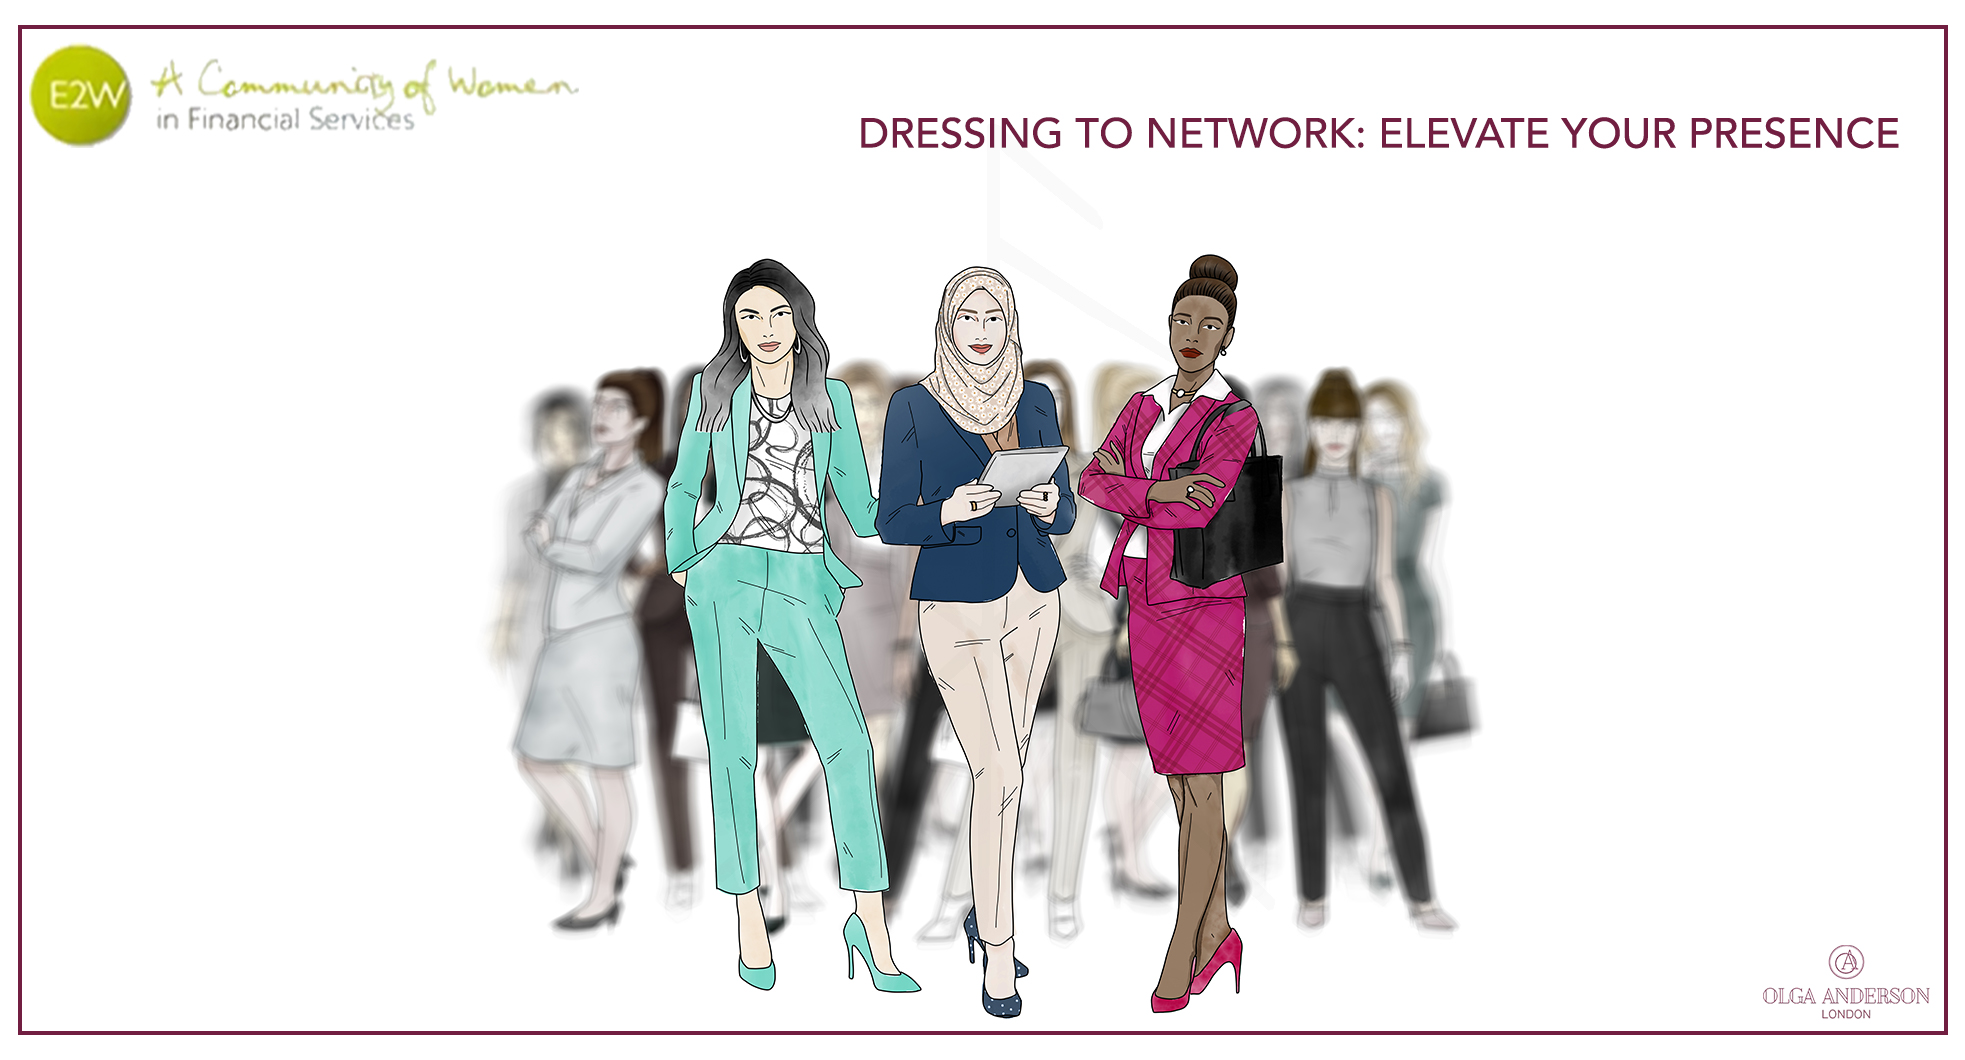 Olga Anderson - Dressing to Network: Elevate your Presence